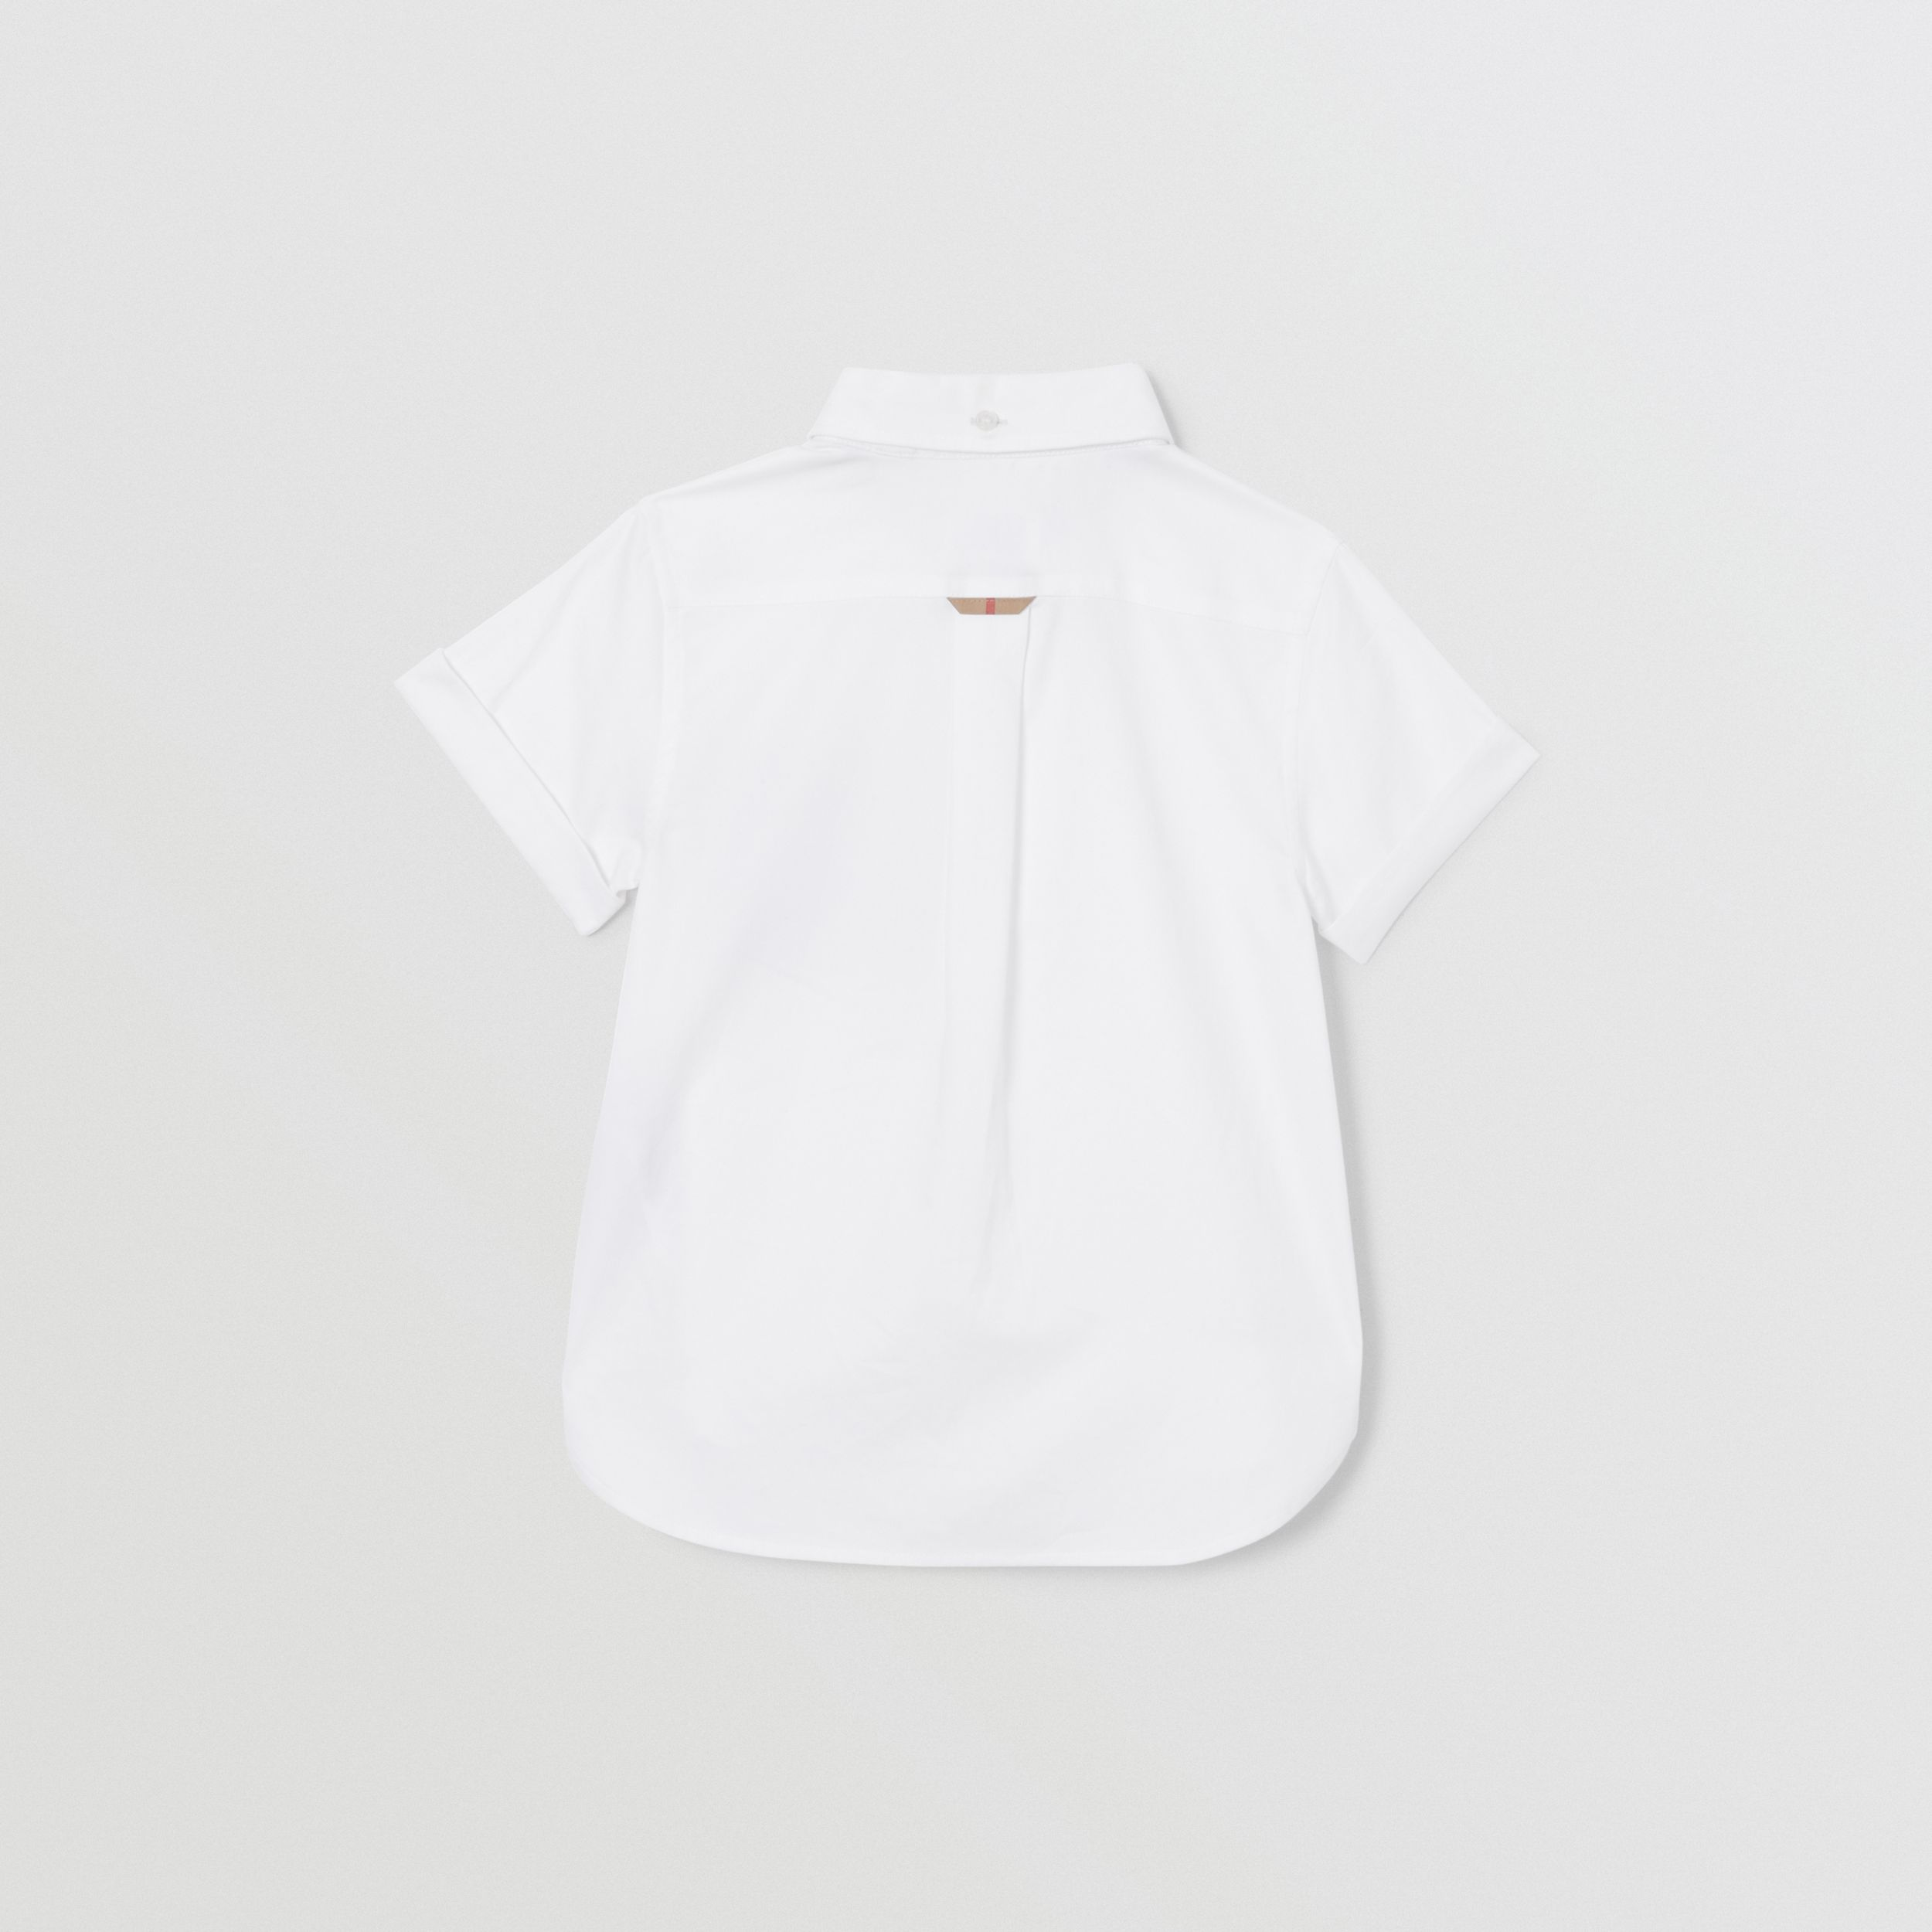 Short-sleeve Vintage Check Trim Cotton Oxford Shirt in White | Burberry Canada - 4